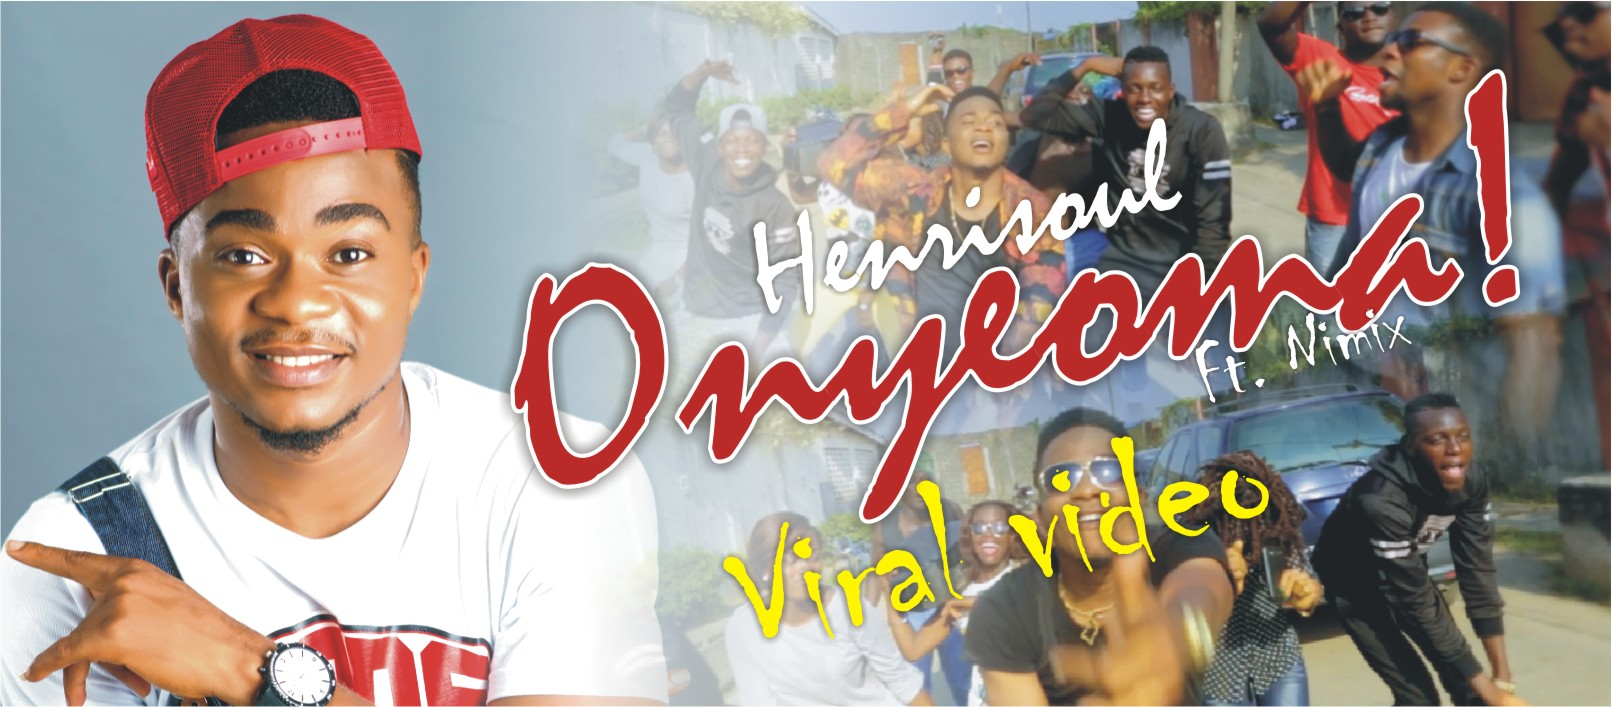 VIDEO: Henrisoul - Onyeoma ft. Nimix